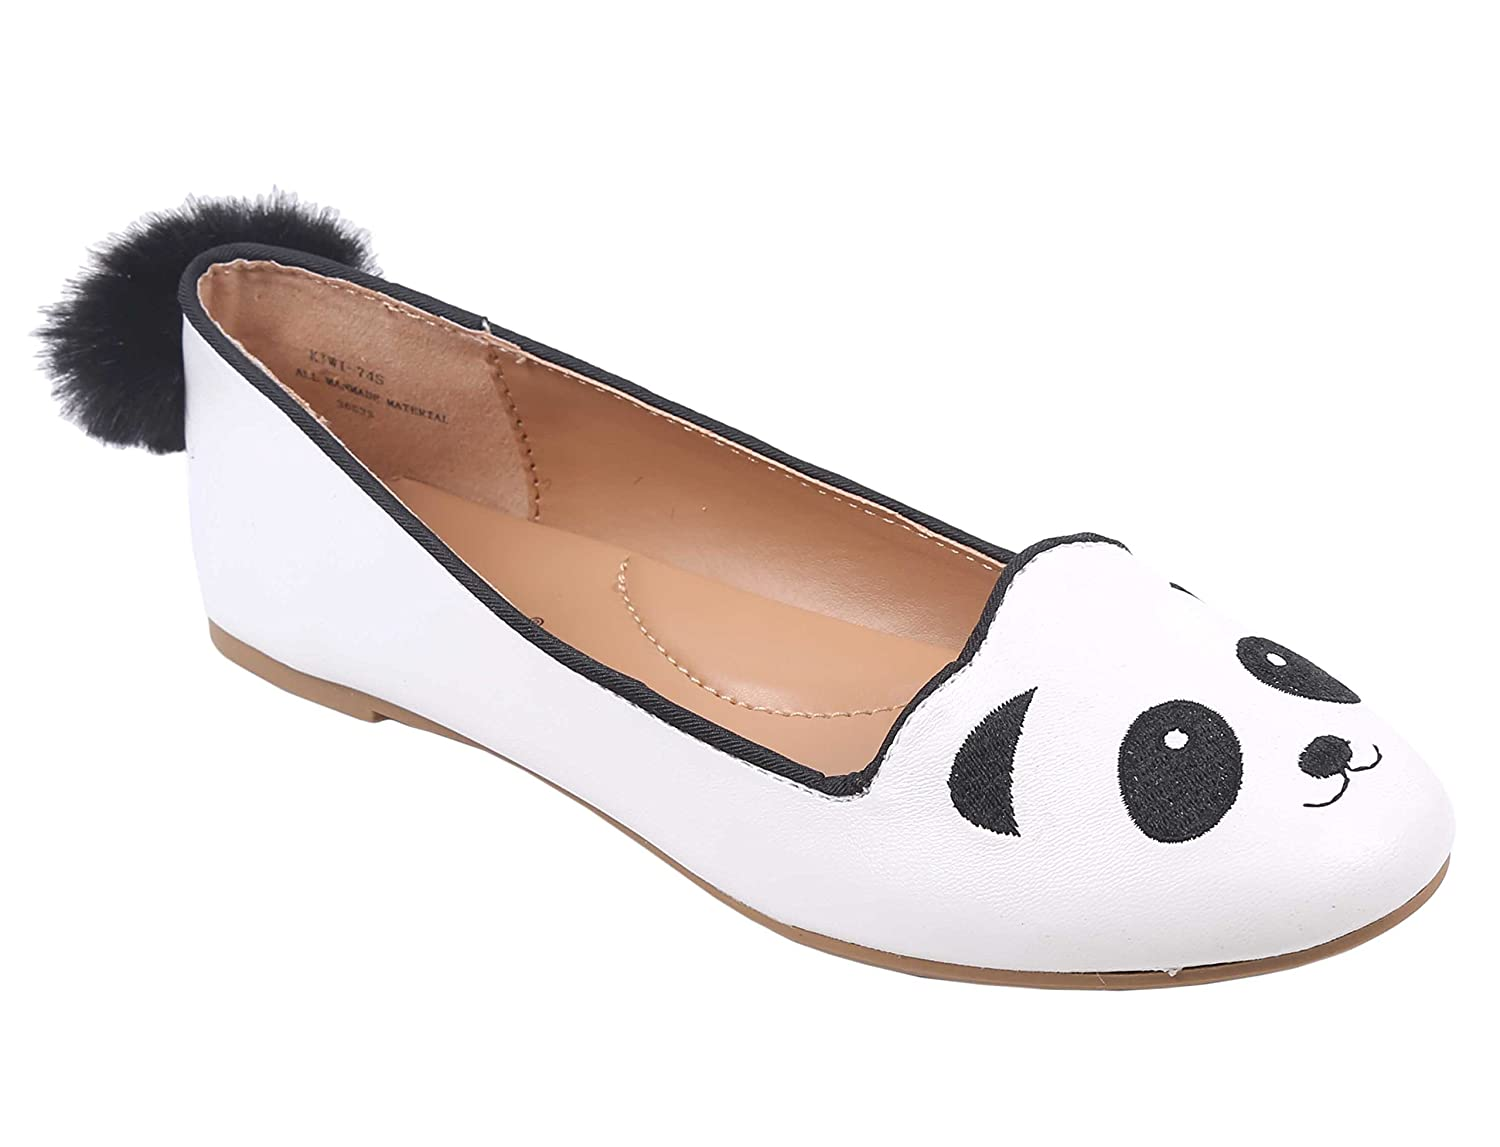 Bamboo Animal Design Closed Toe with a Furry Pompom Tail Flats Women Shoes B07CJNNPTR 7 B(M) US|Panda